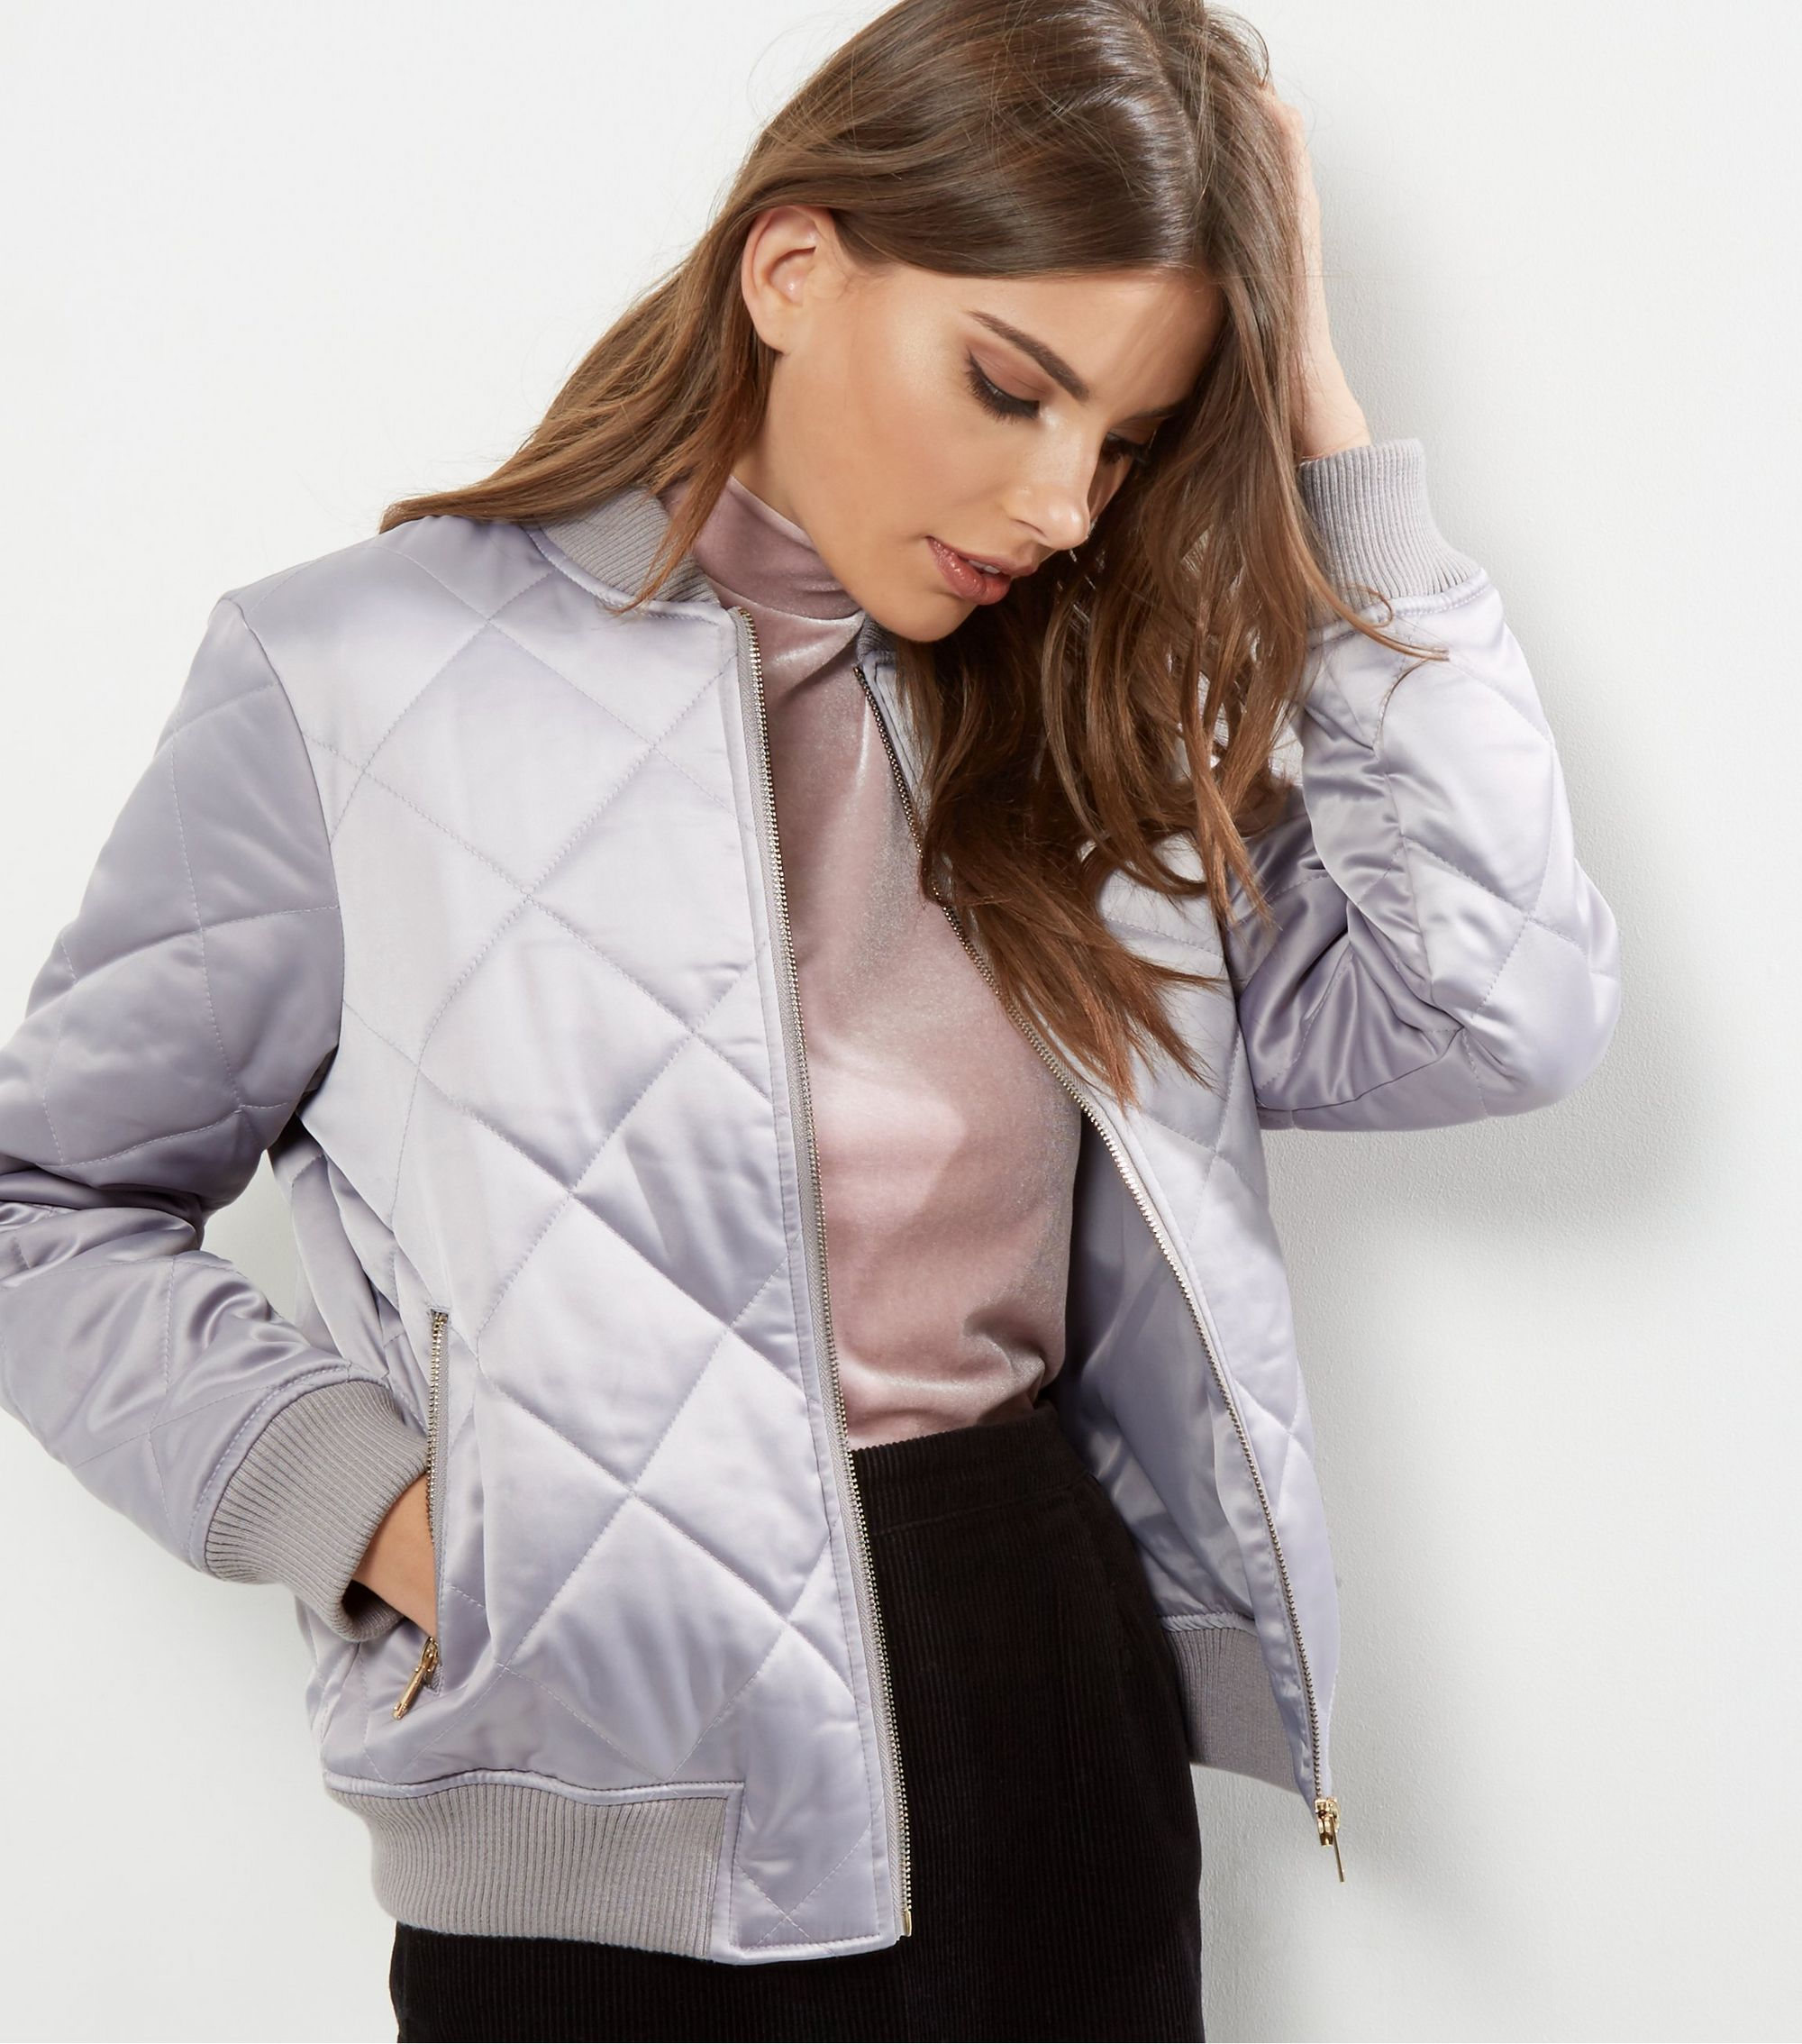 http://media.newlookassets.com/i/newlook/377901304/womens/jackets-and-coats/bomber-jackets/grey-quilted-padded-bomber-jacket/?$new_pdp_szoom_image_2000$